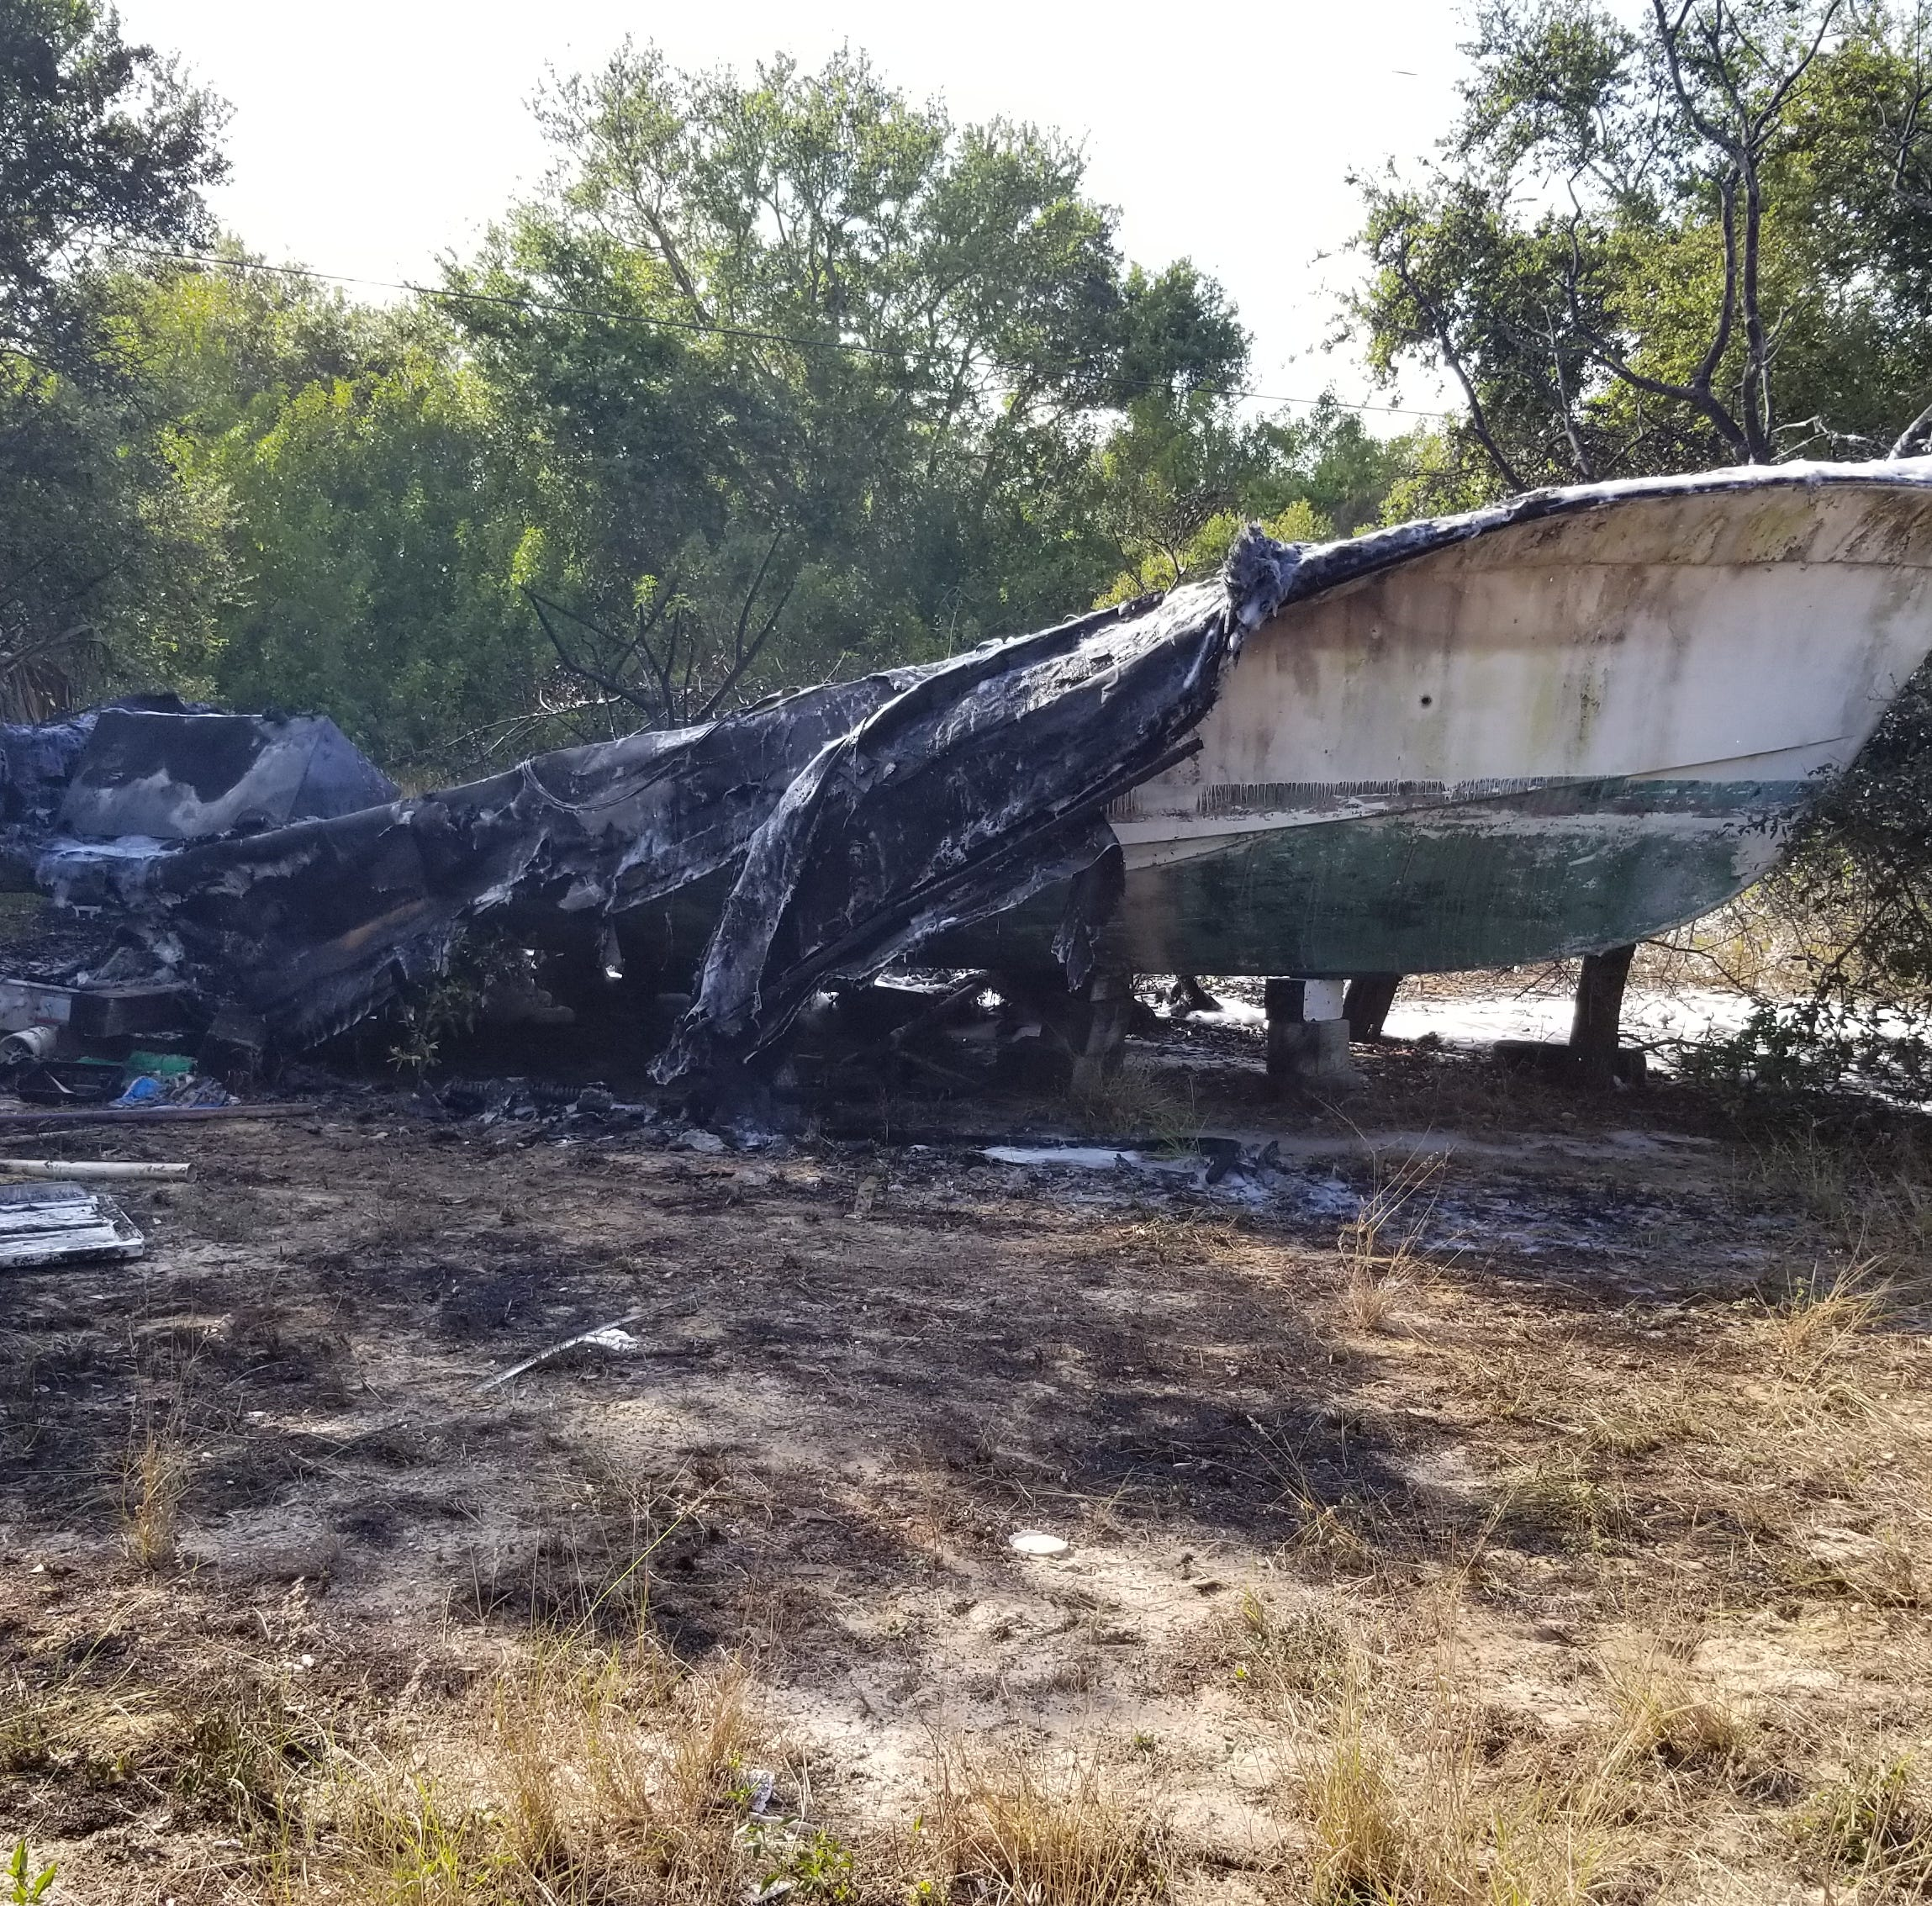 Boat goes up in flames in Sebastian after reported explosion; thick black smoke blankets area